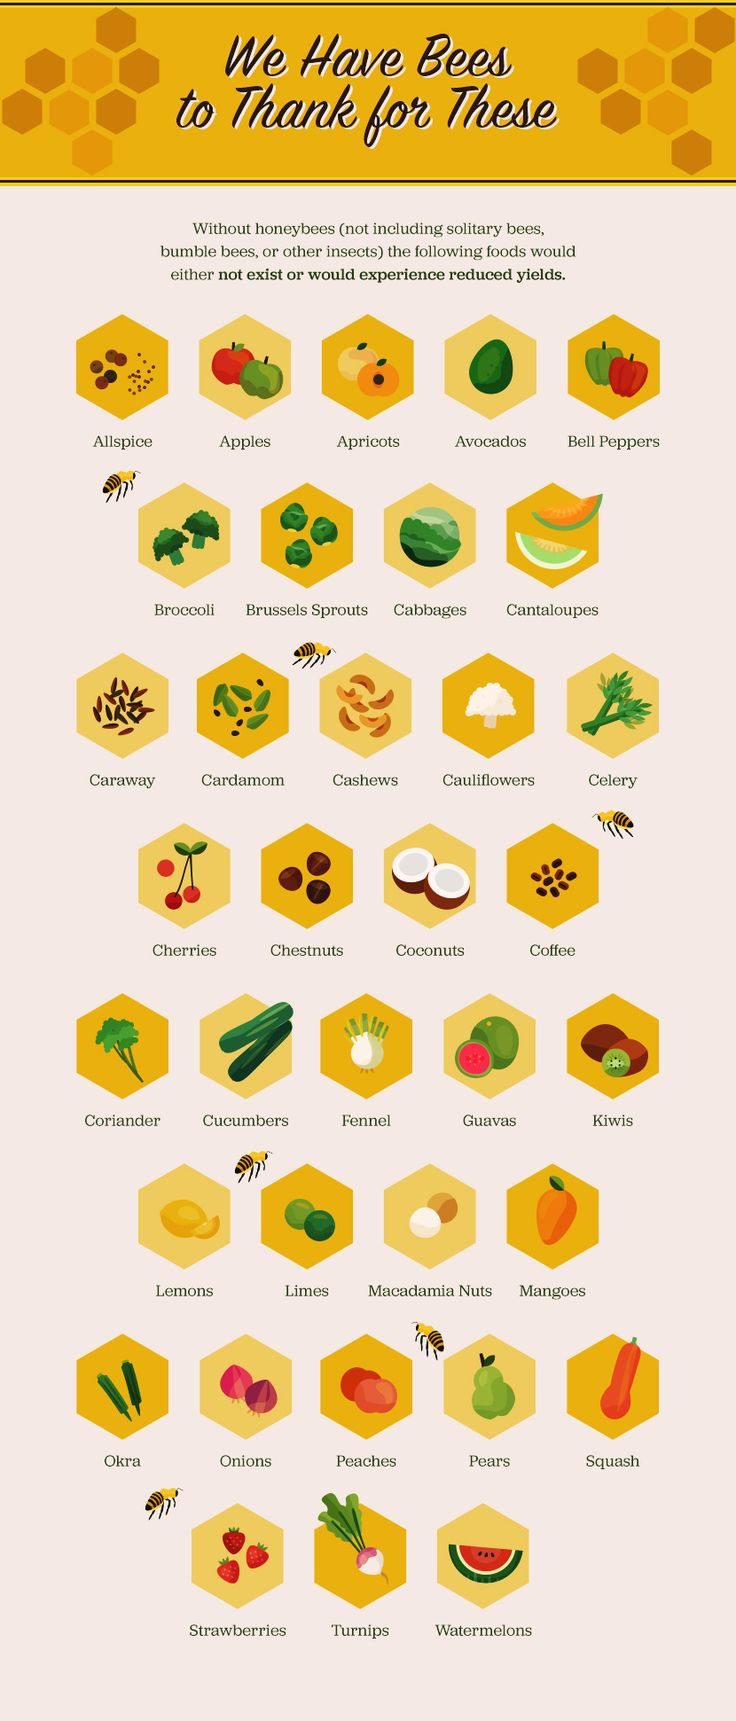 The Importance of Bees: Foods That Bees Make